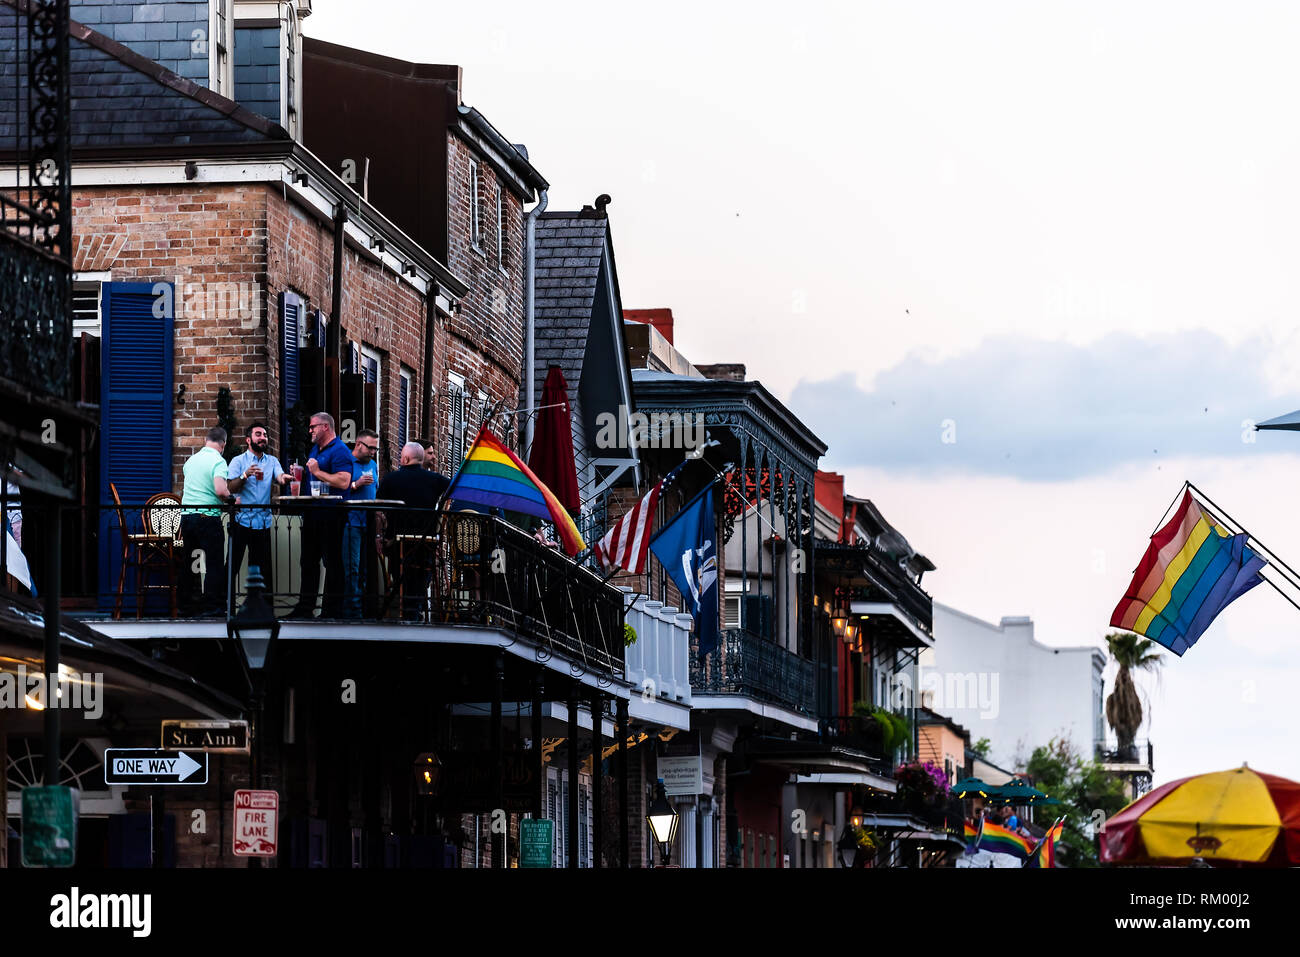 homo dating New Orleans